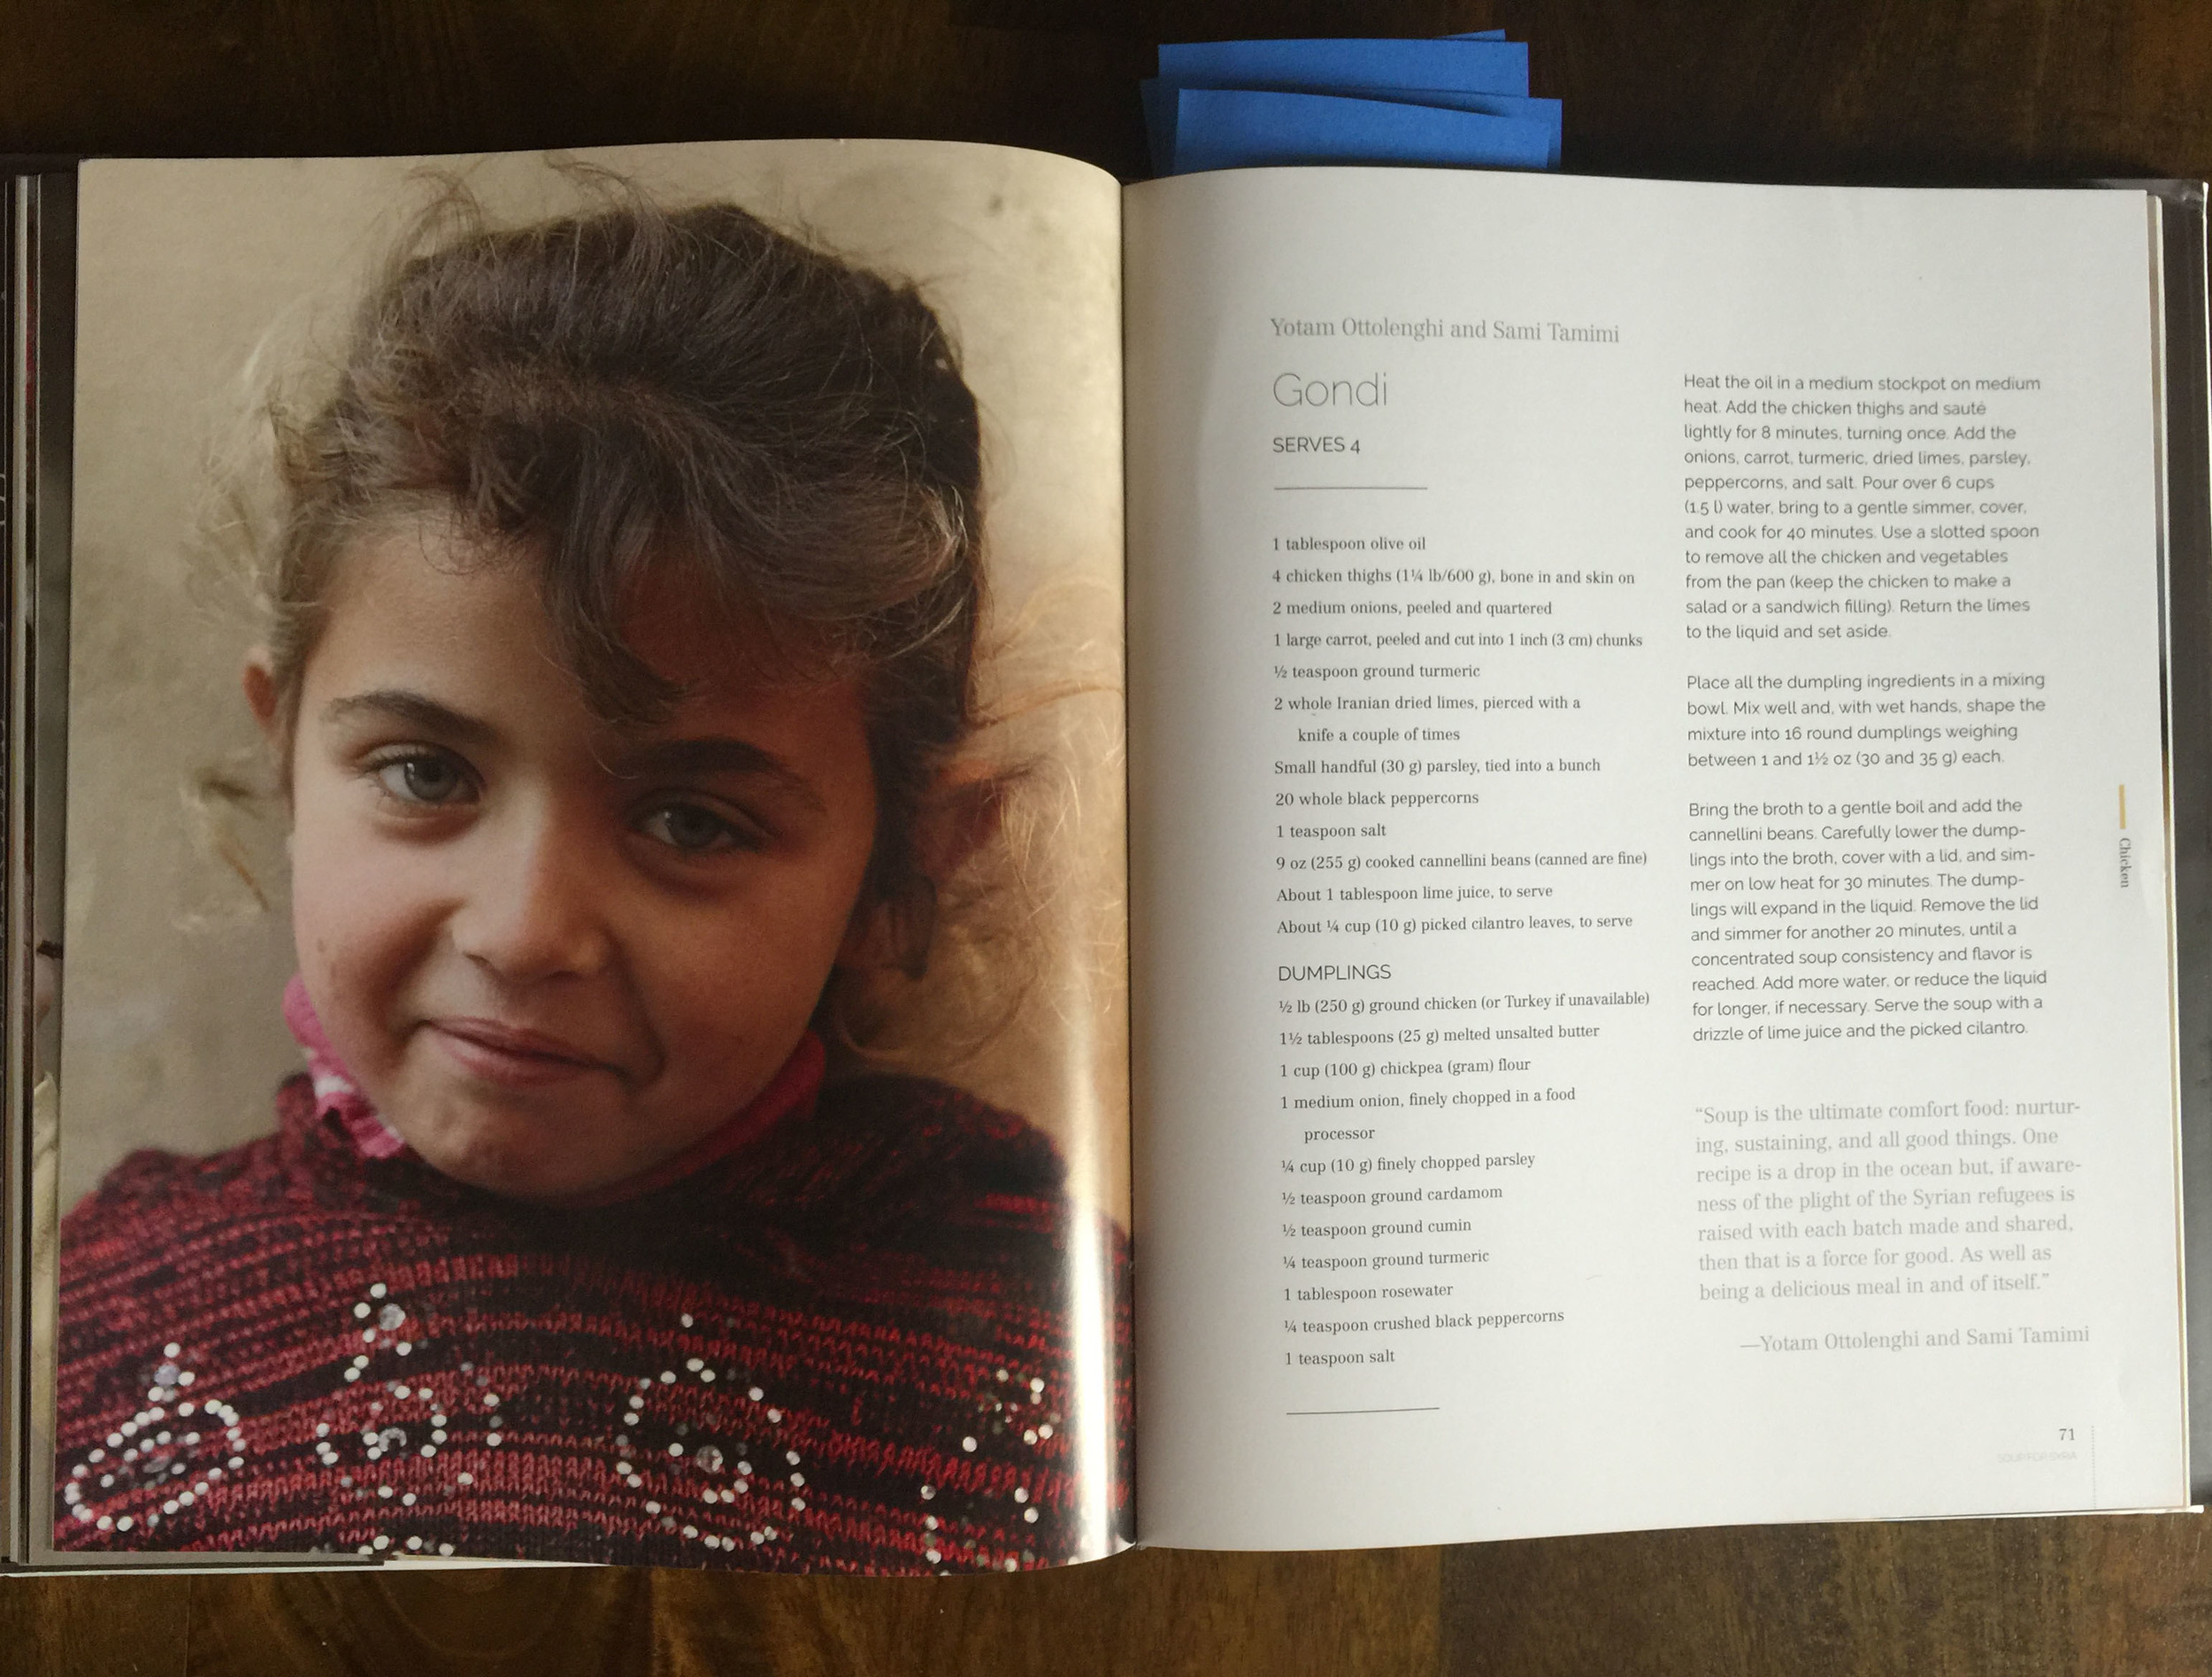 A photograph of a girl in a refugee camp faces a recipe for gondi by Yotam Ottolenghi and Sami Tamimi